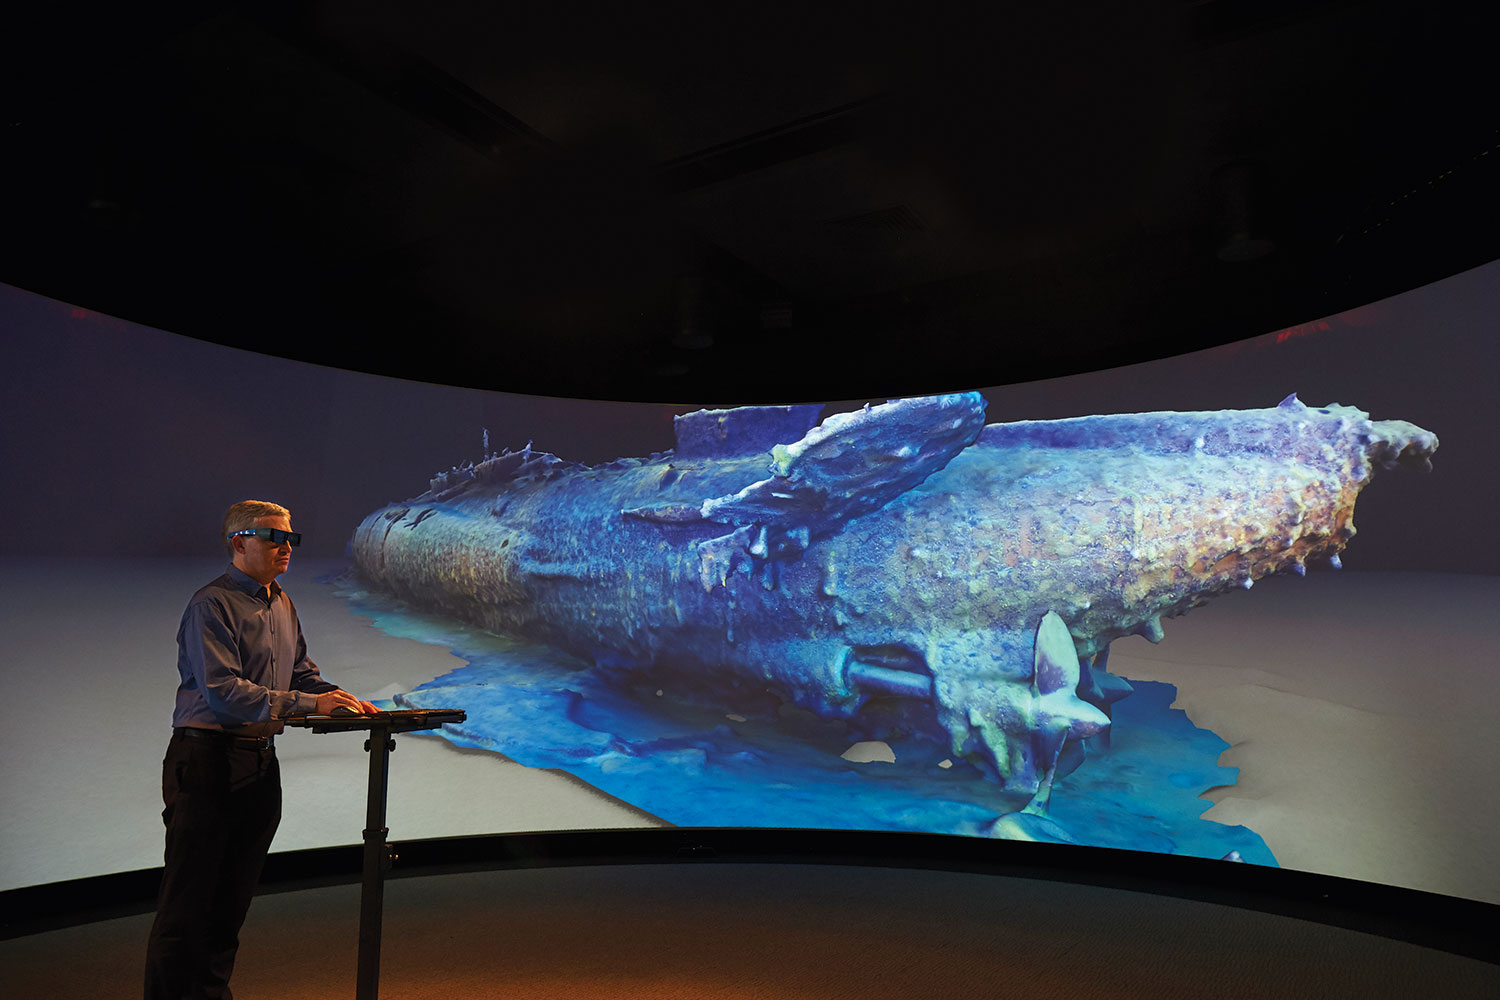 A digital reconstruction of the HMAS AE1 displayed on the HIVE cylinder. (Screen content: Paul G Allen, Find AE1 Ltd, ANMM and Curtin University)